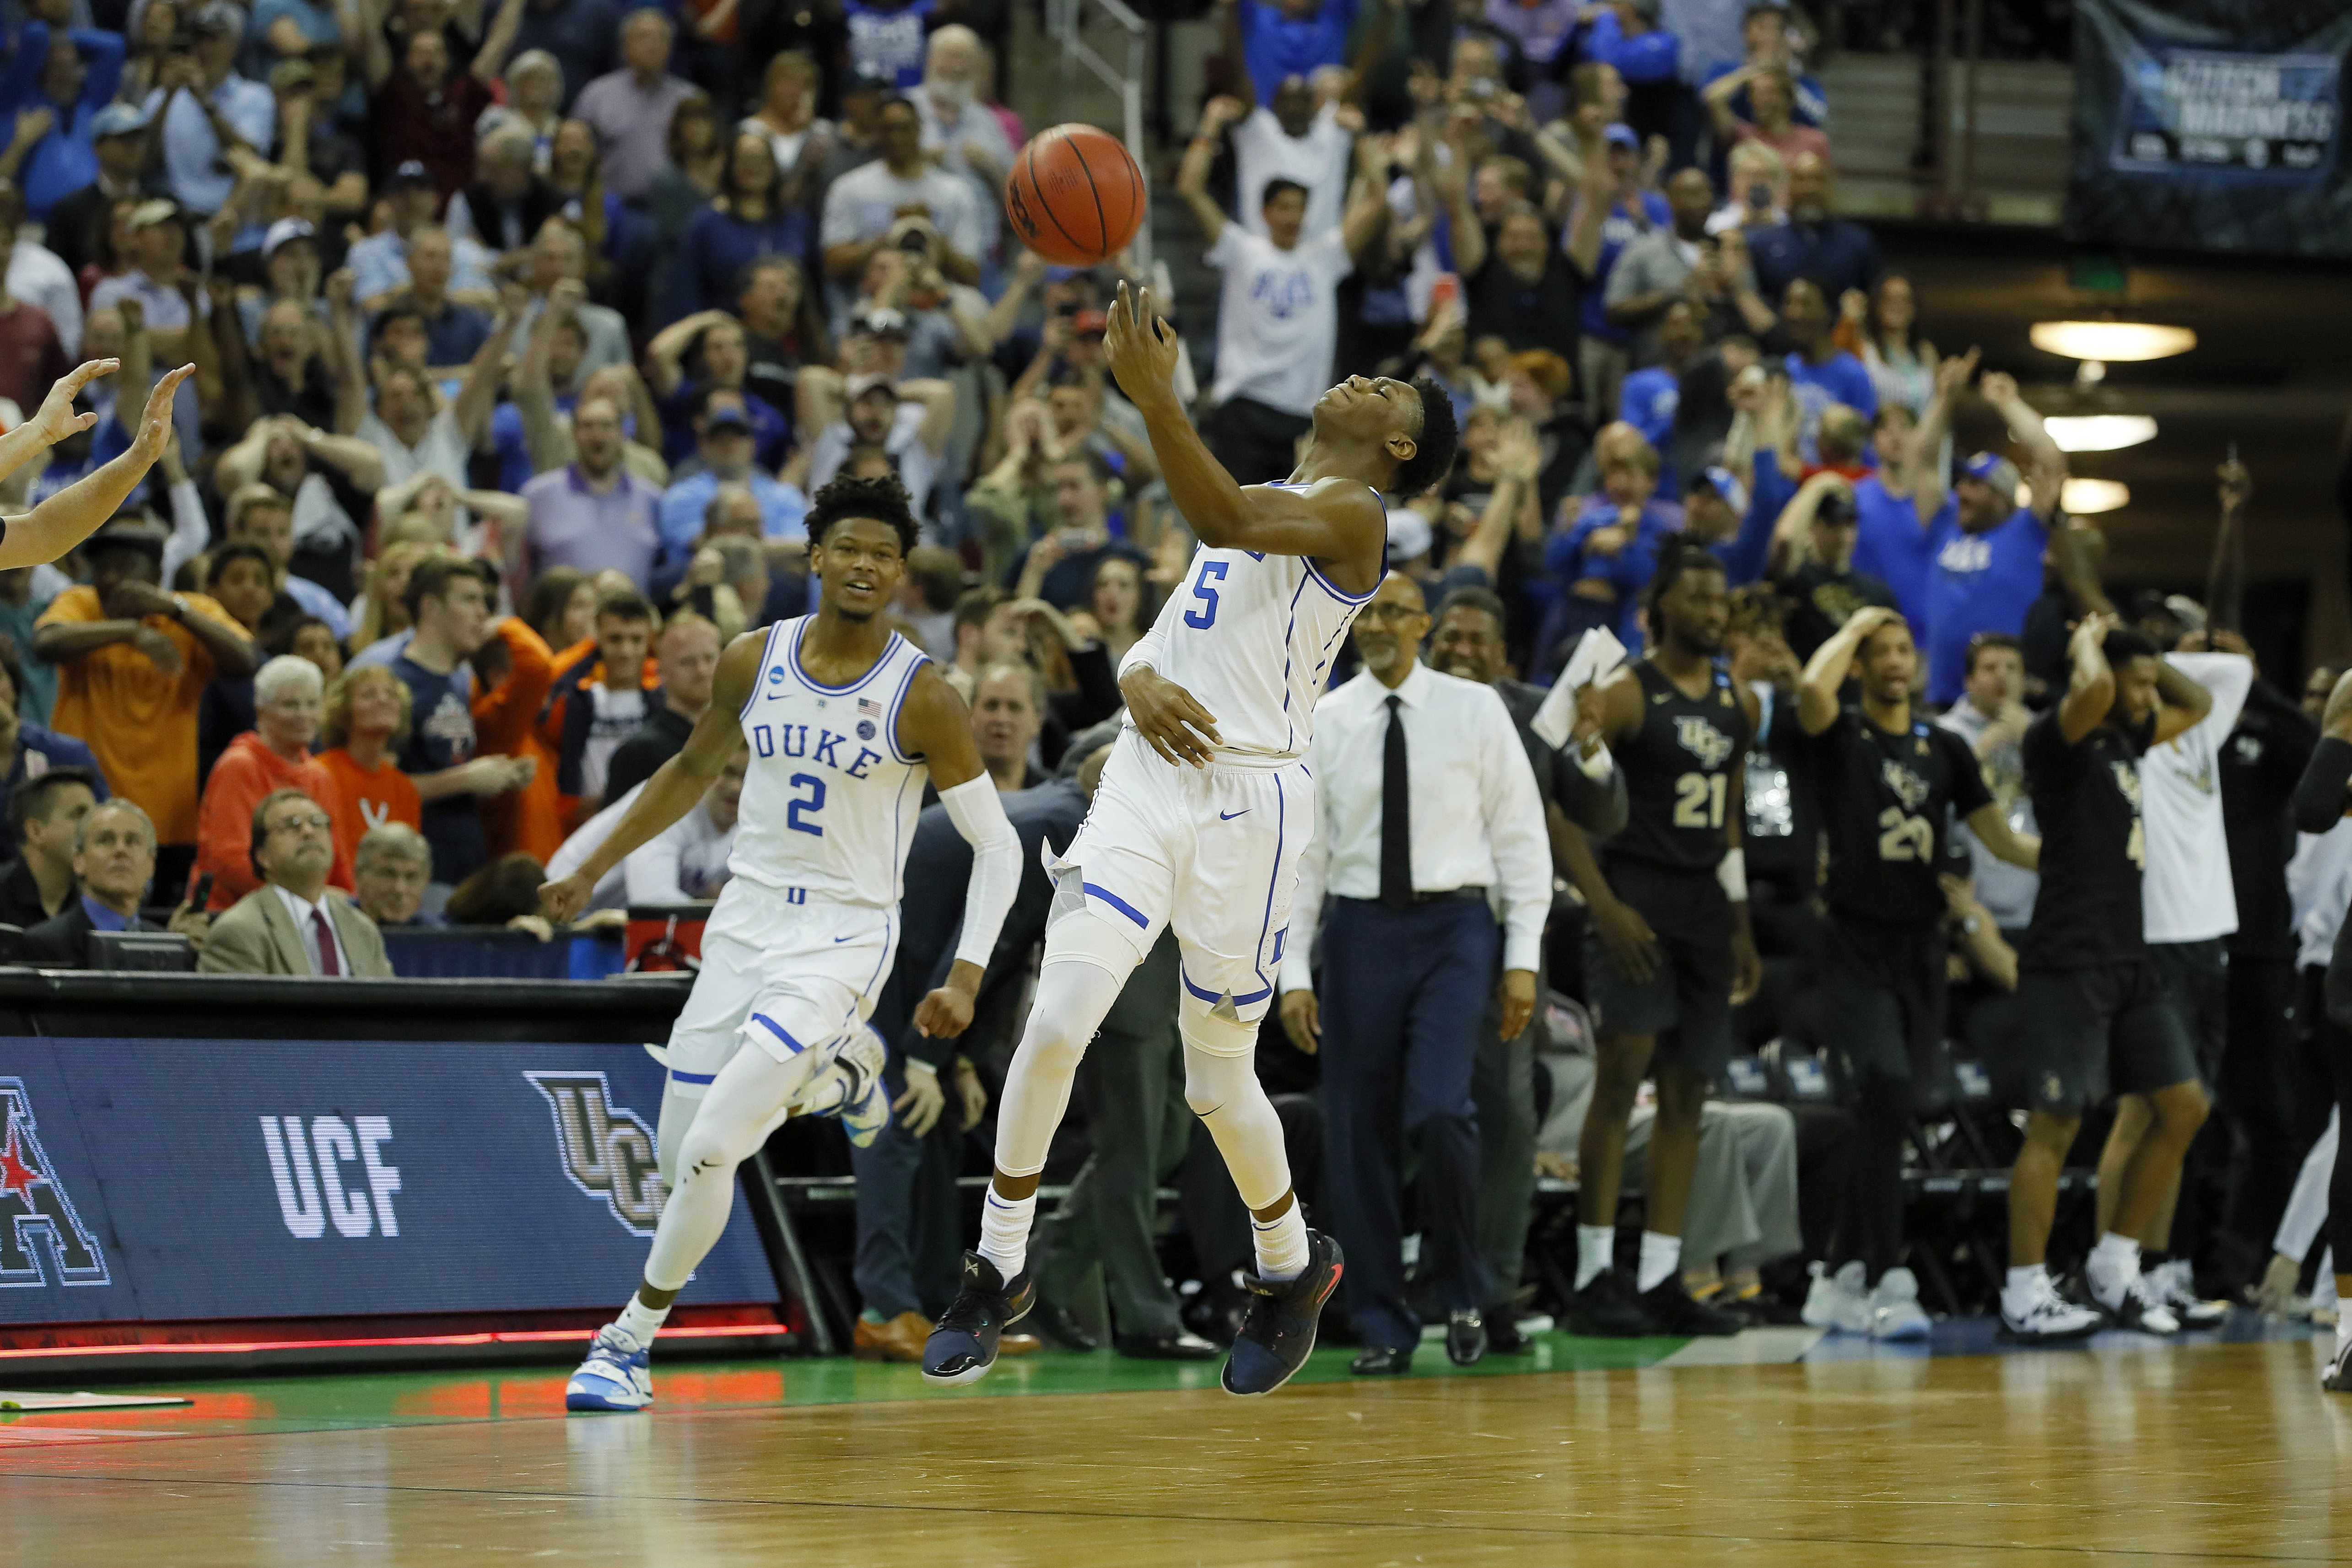 March Madness 2019: Bracket updates and highlights from Sunday